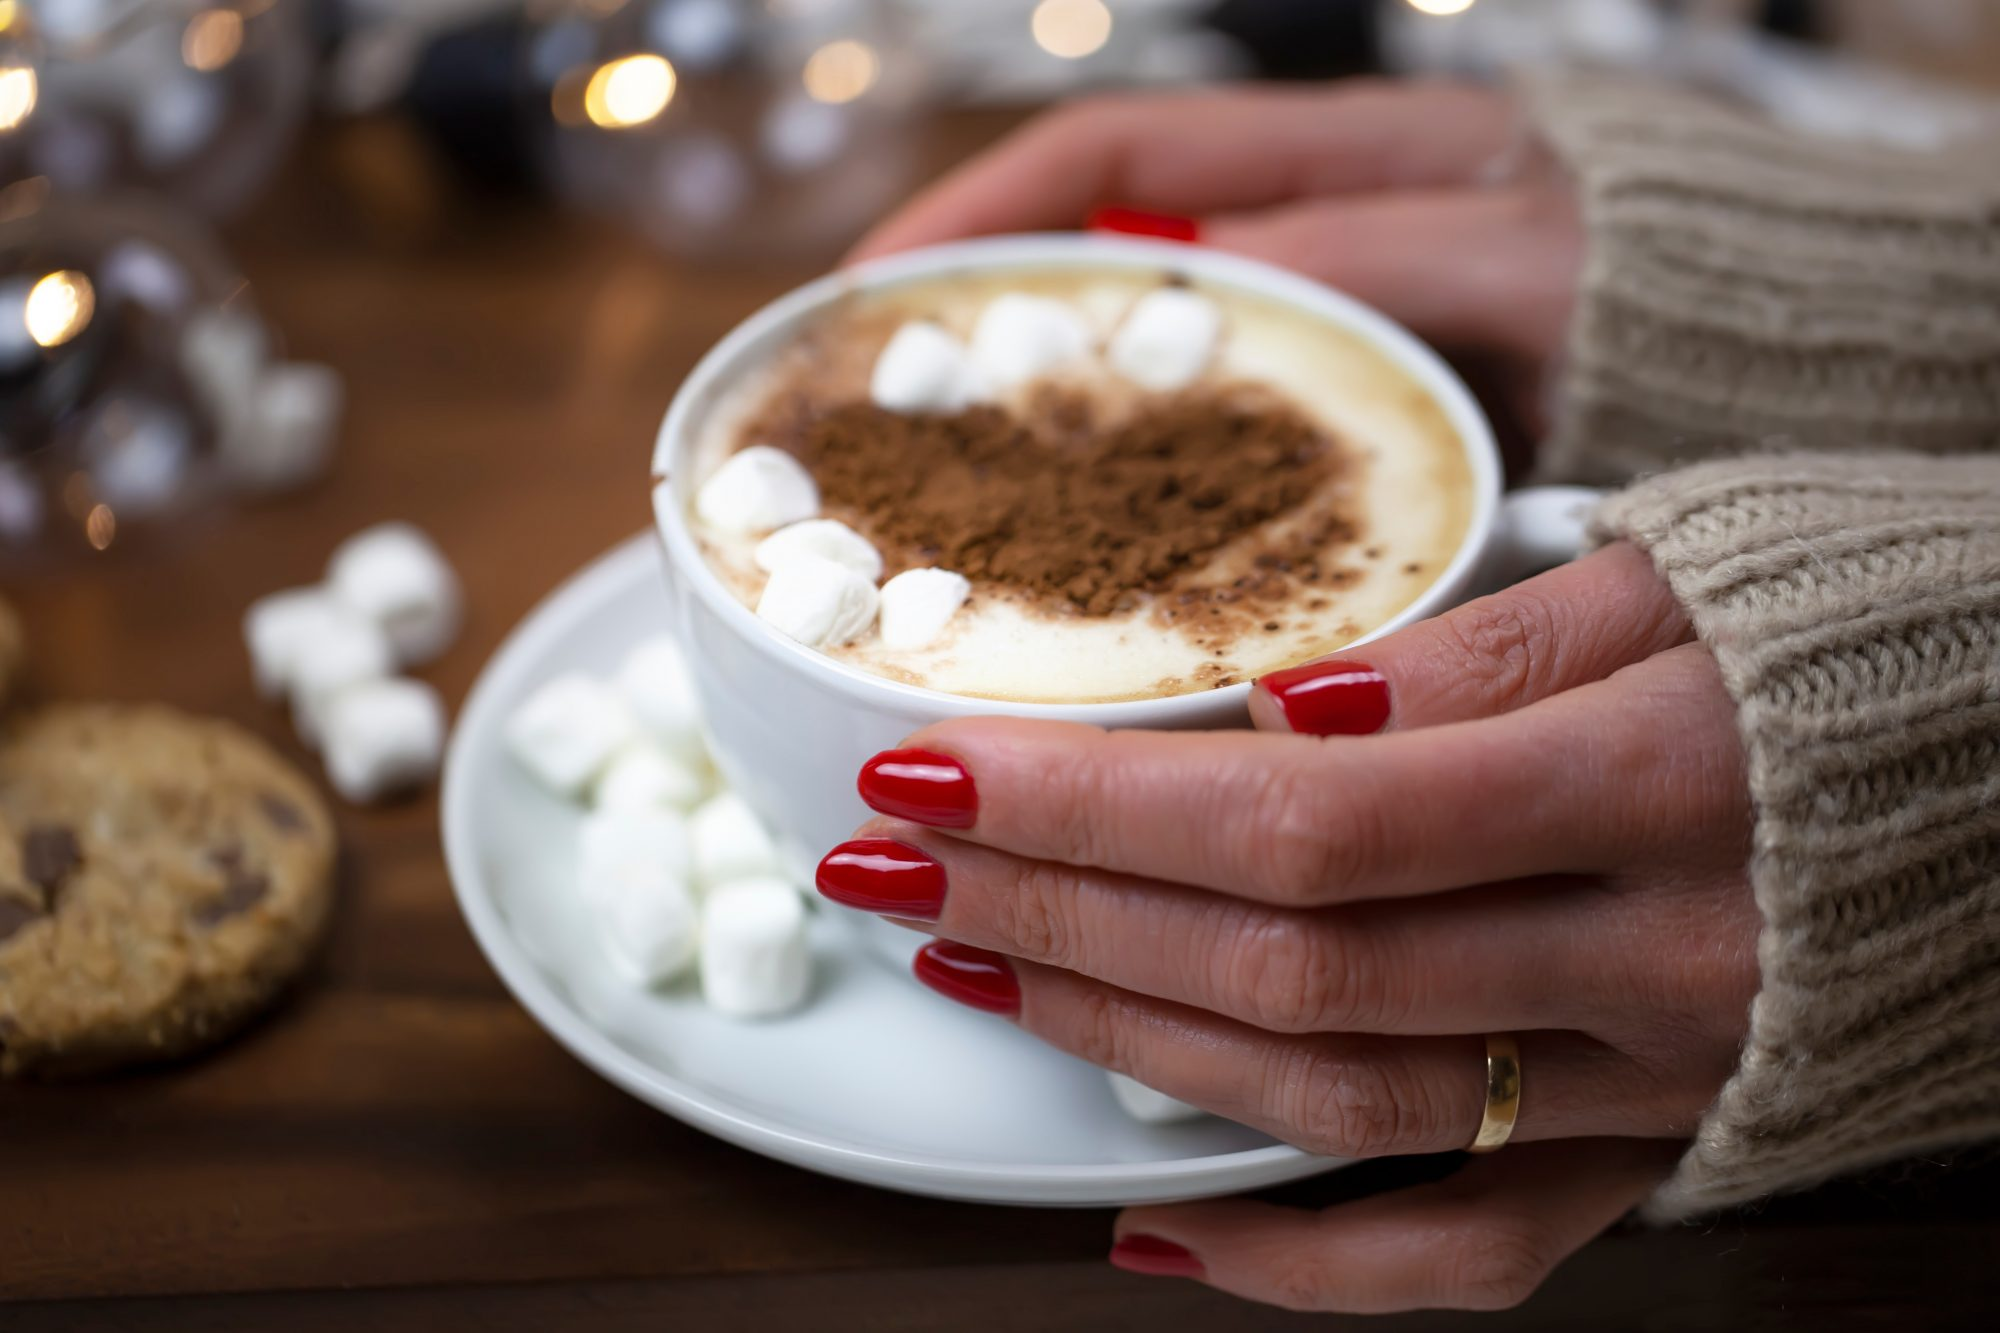 Red Nails Holding Cocoa